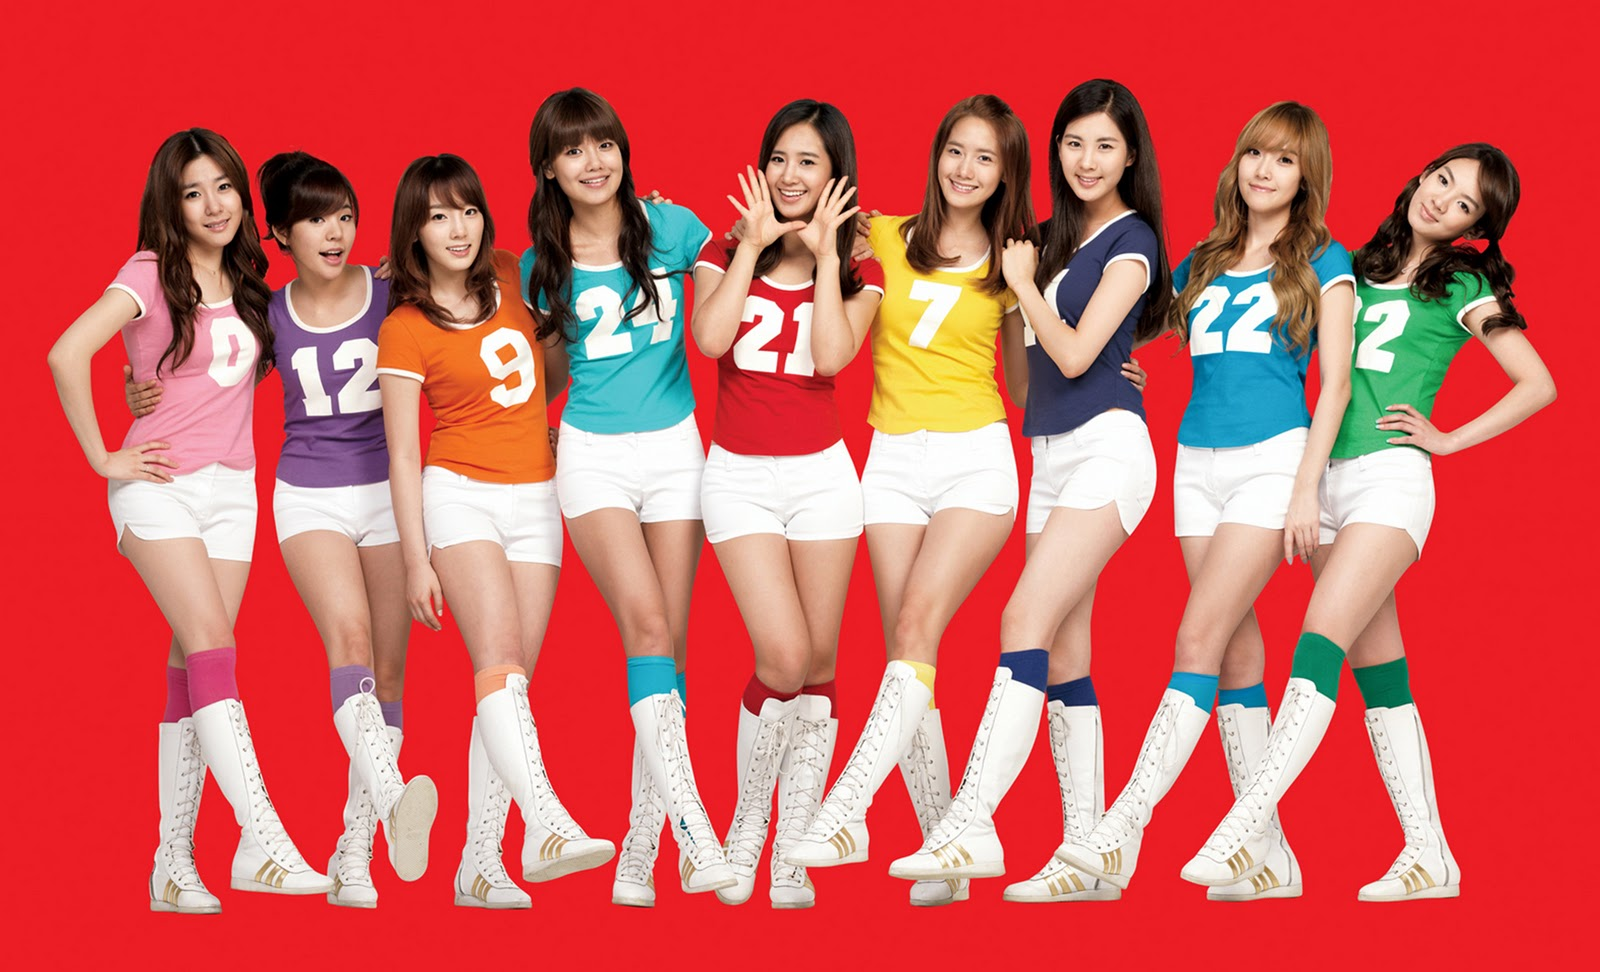 snsd-wallpaper-oh_20131201061137500.jpg